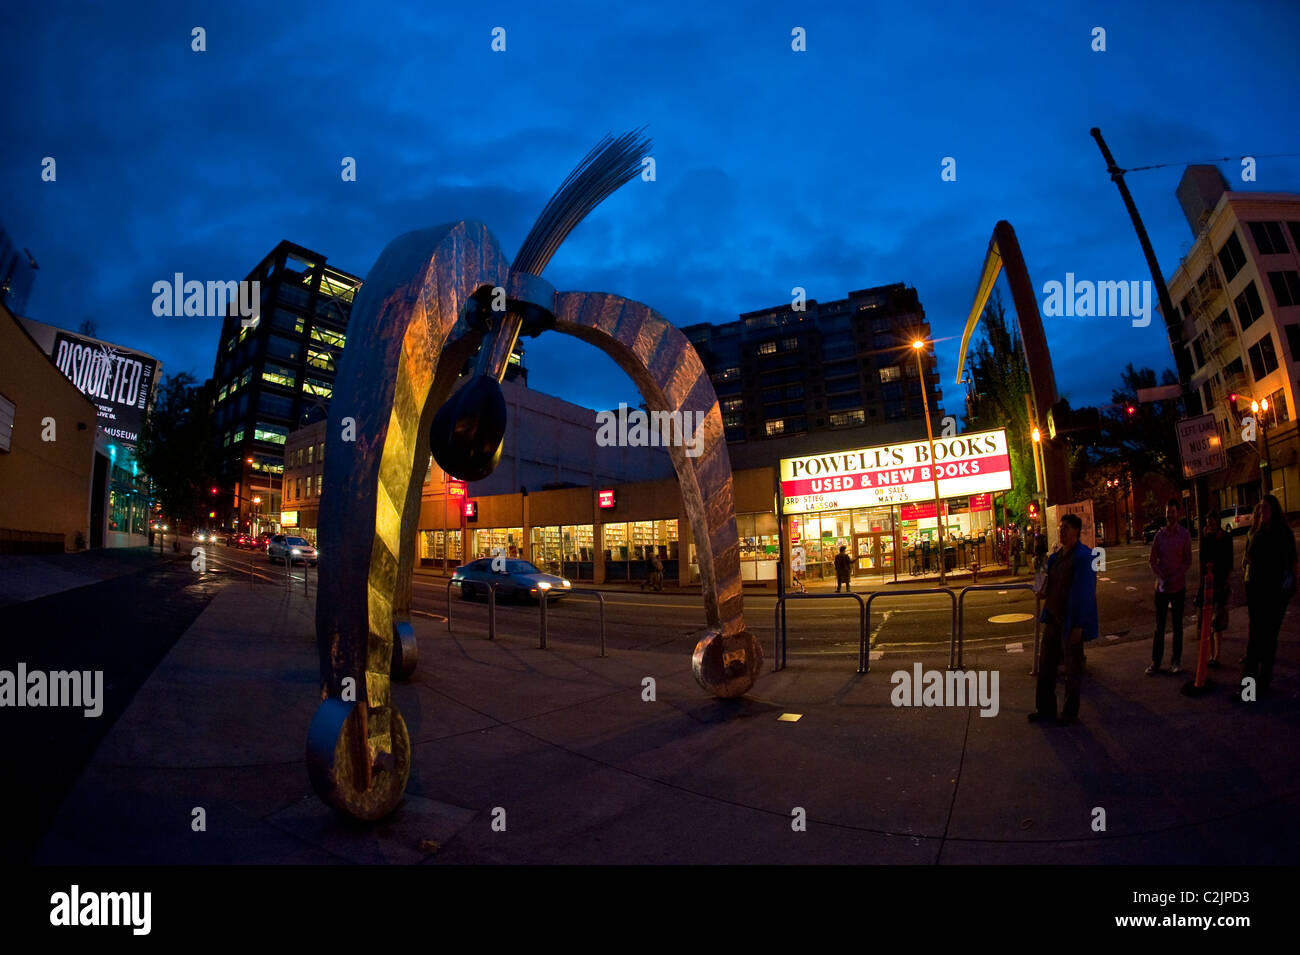 POD kinetic sculpture by Peter Beeman, located downtown on W Burnside, across from Powell's City of Books, Portland, - Stock Image